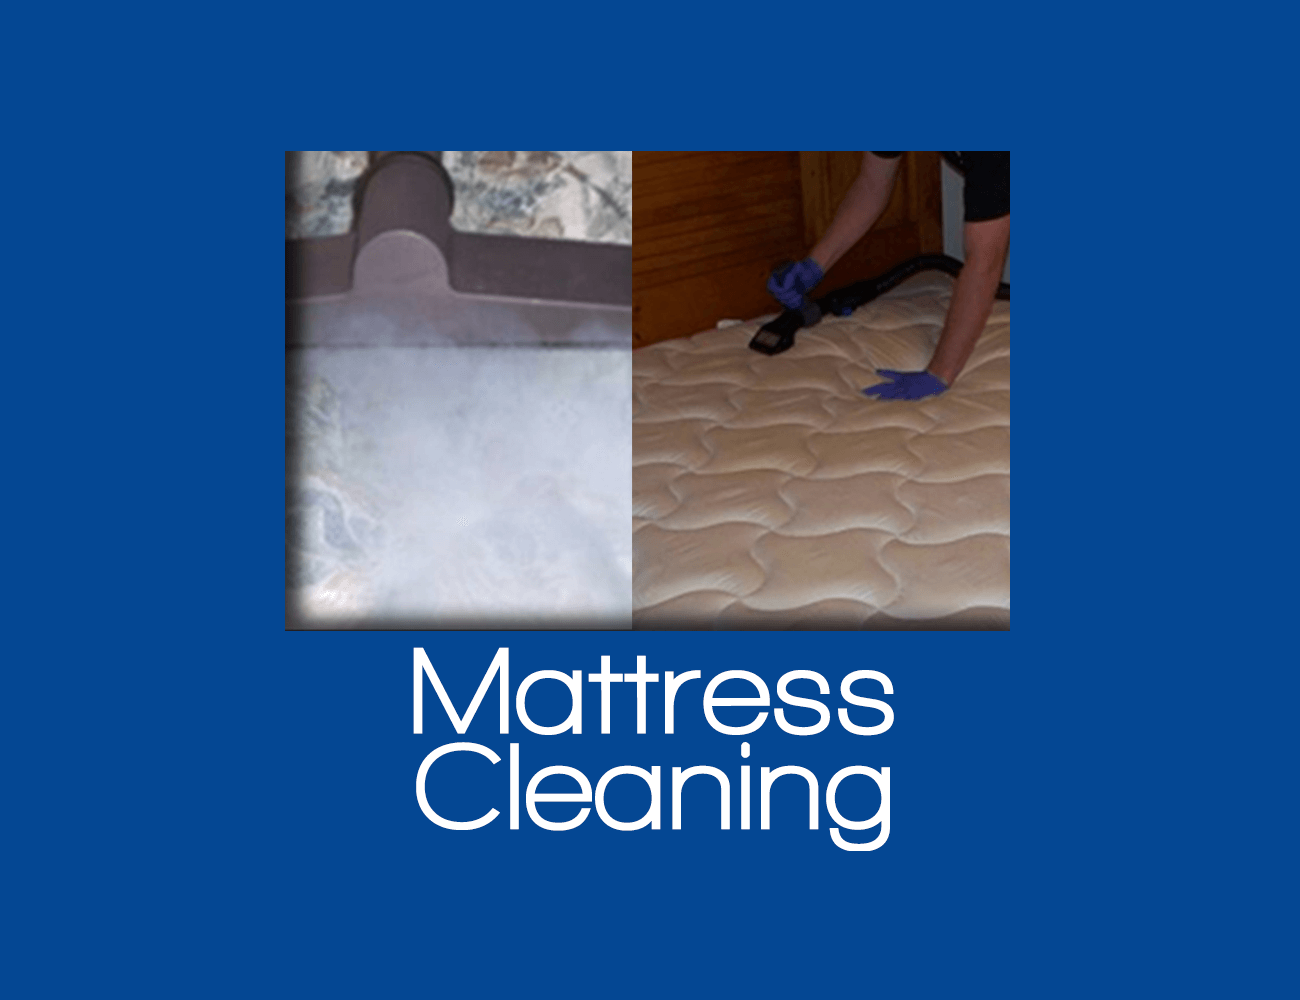 Mattress Cleaning Staten Island